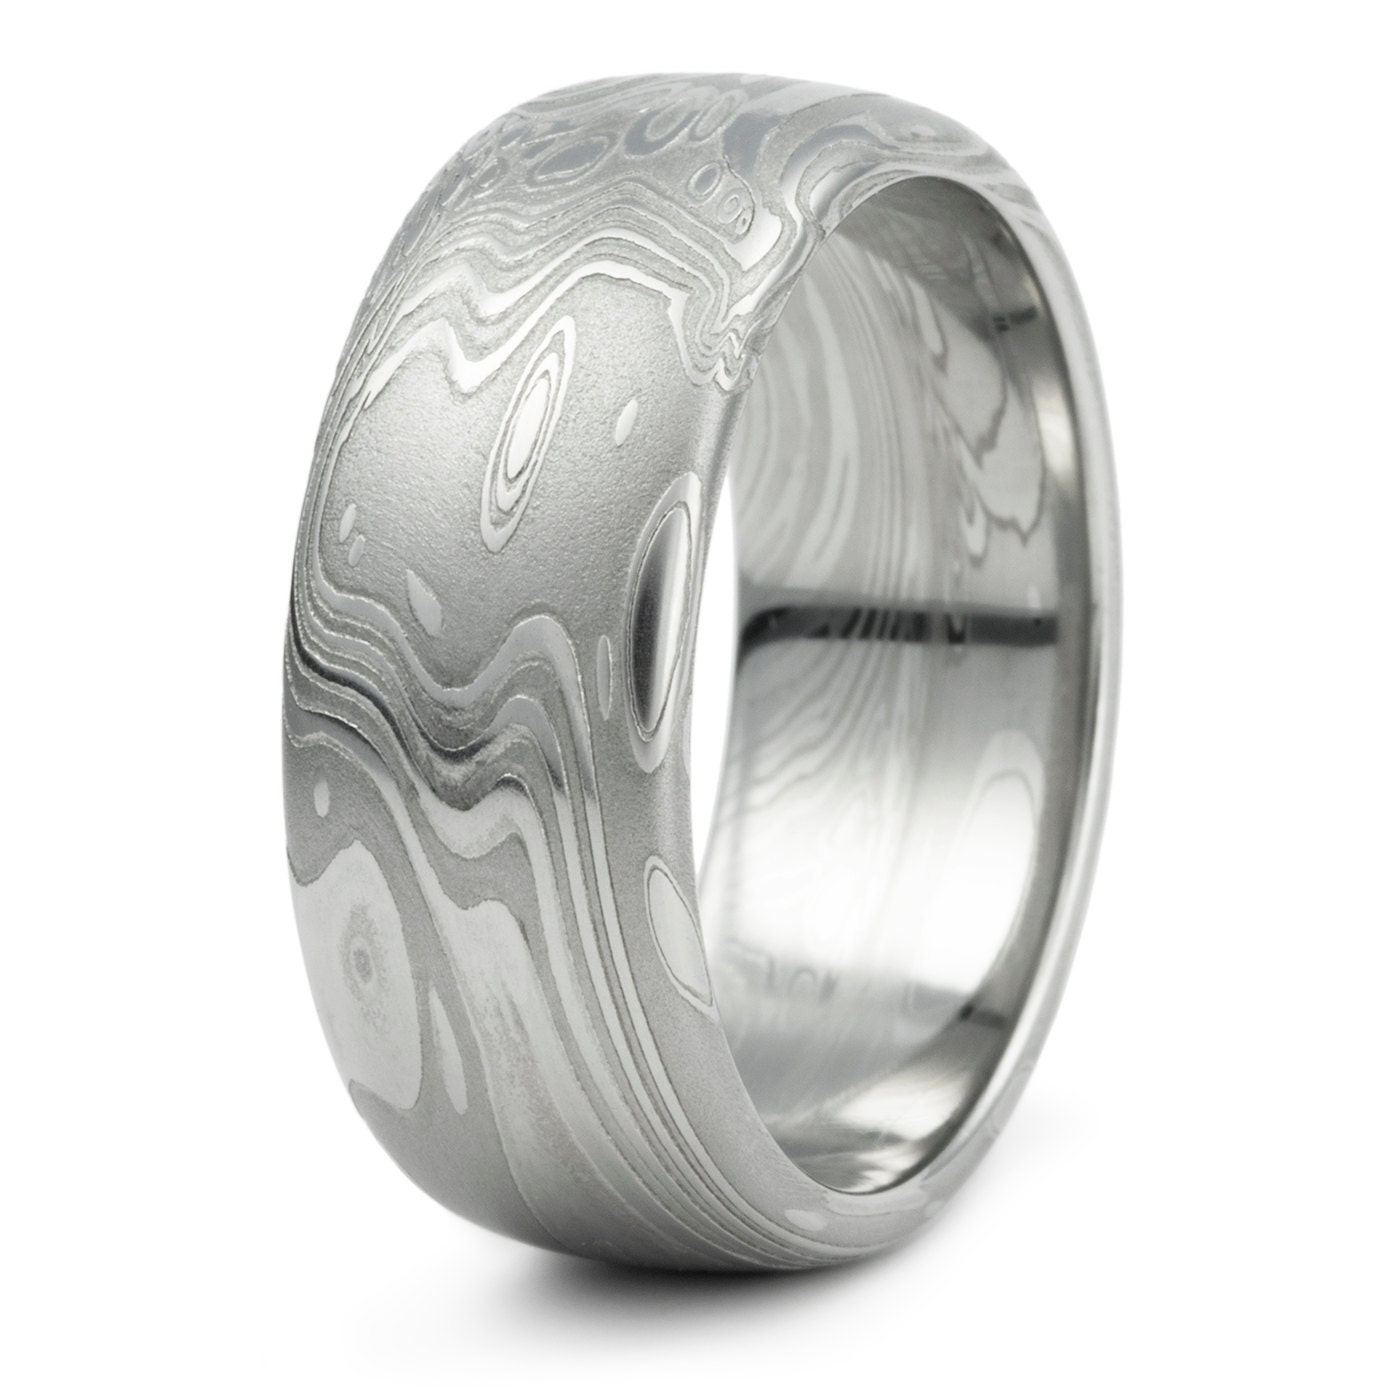 Unique Followers One Ring